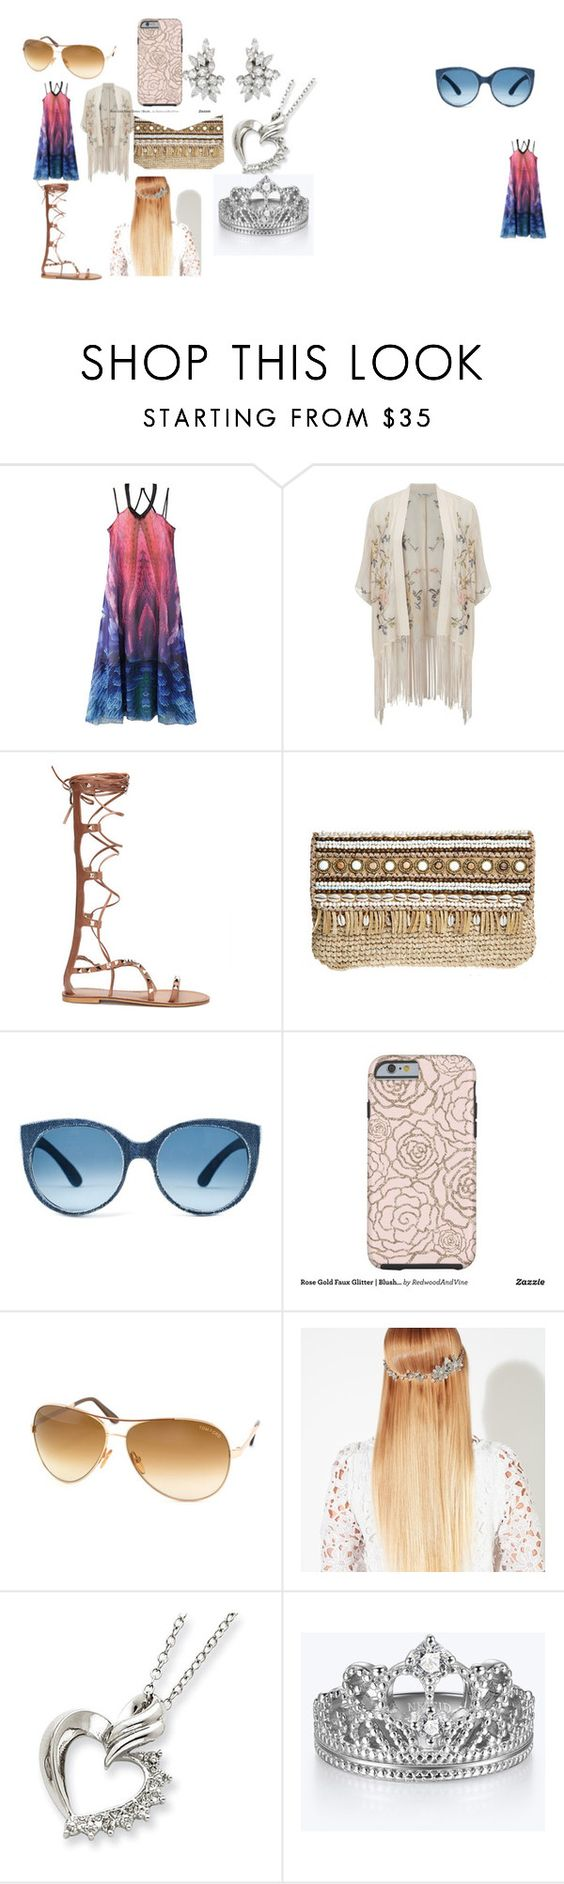 """""""Hawaiian chill time outfit"""" by frizz-31 on Polyvore featuring WithChic, Miss Selfridge, Skemo, Tom Ford and John Lewis"""